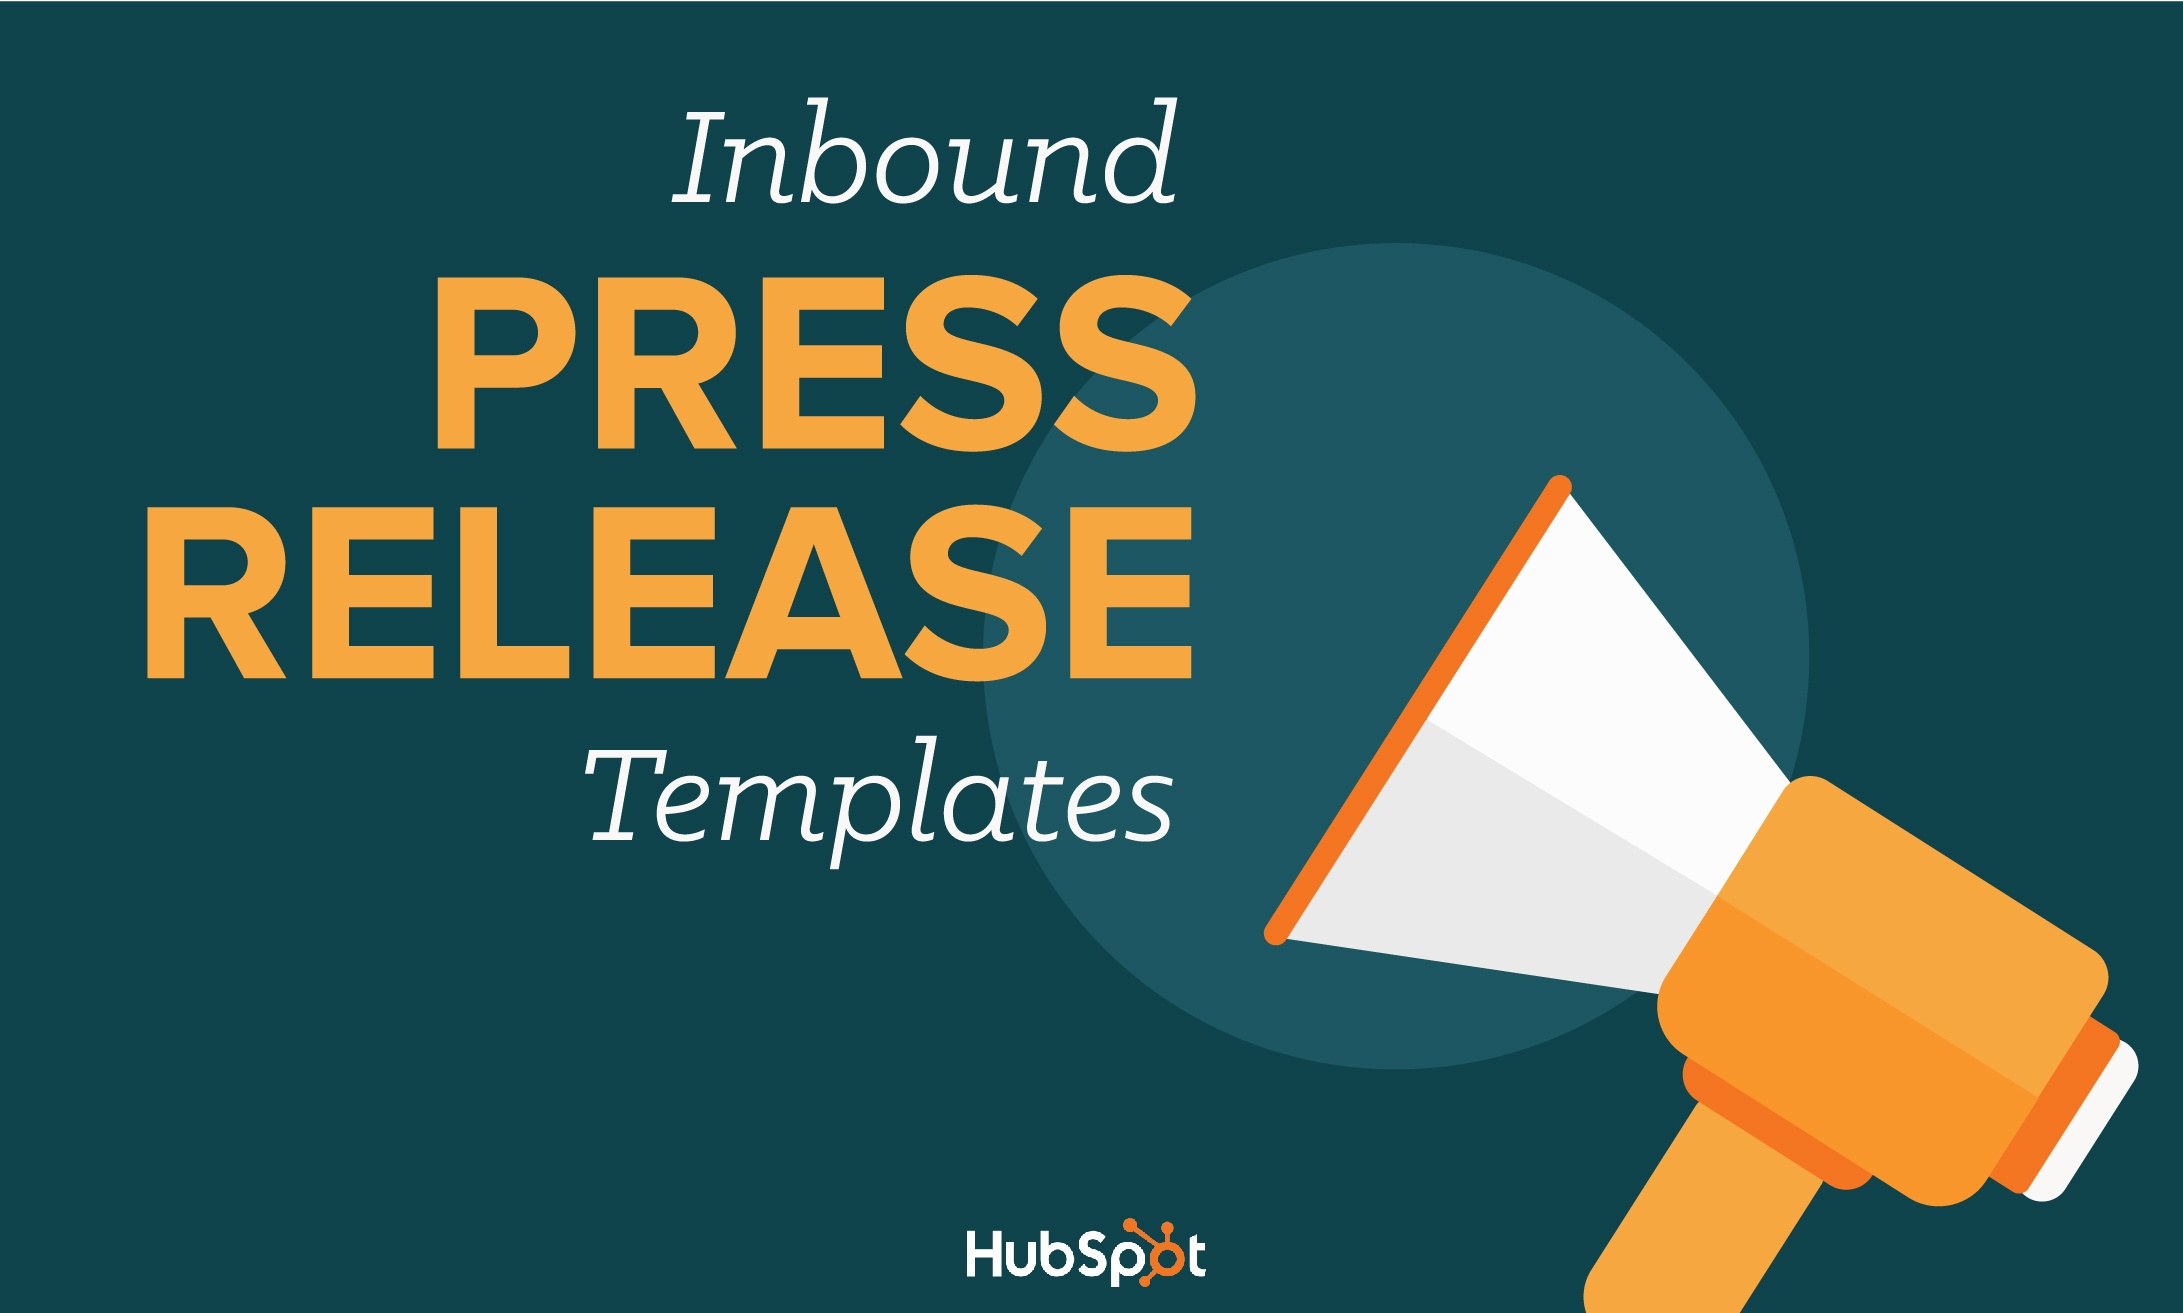 Inbound%20press%20release%20templates%20cover%20horizontal